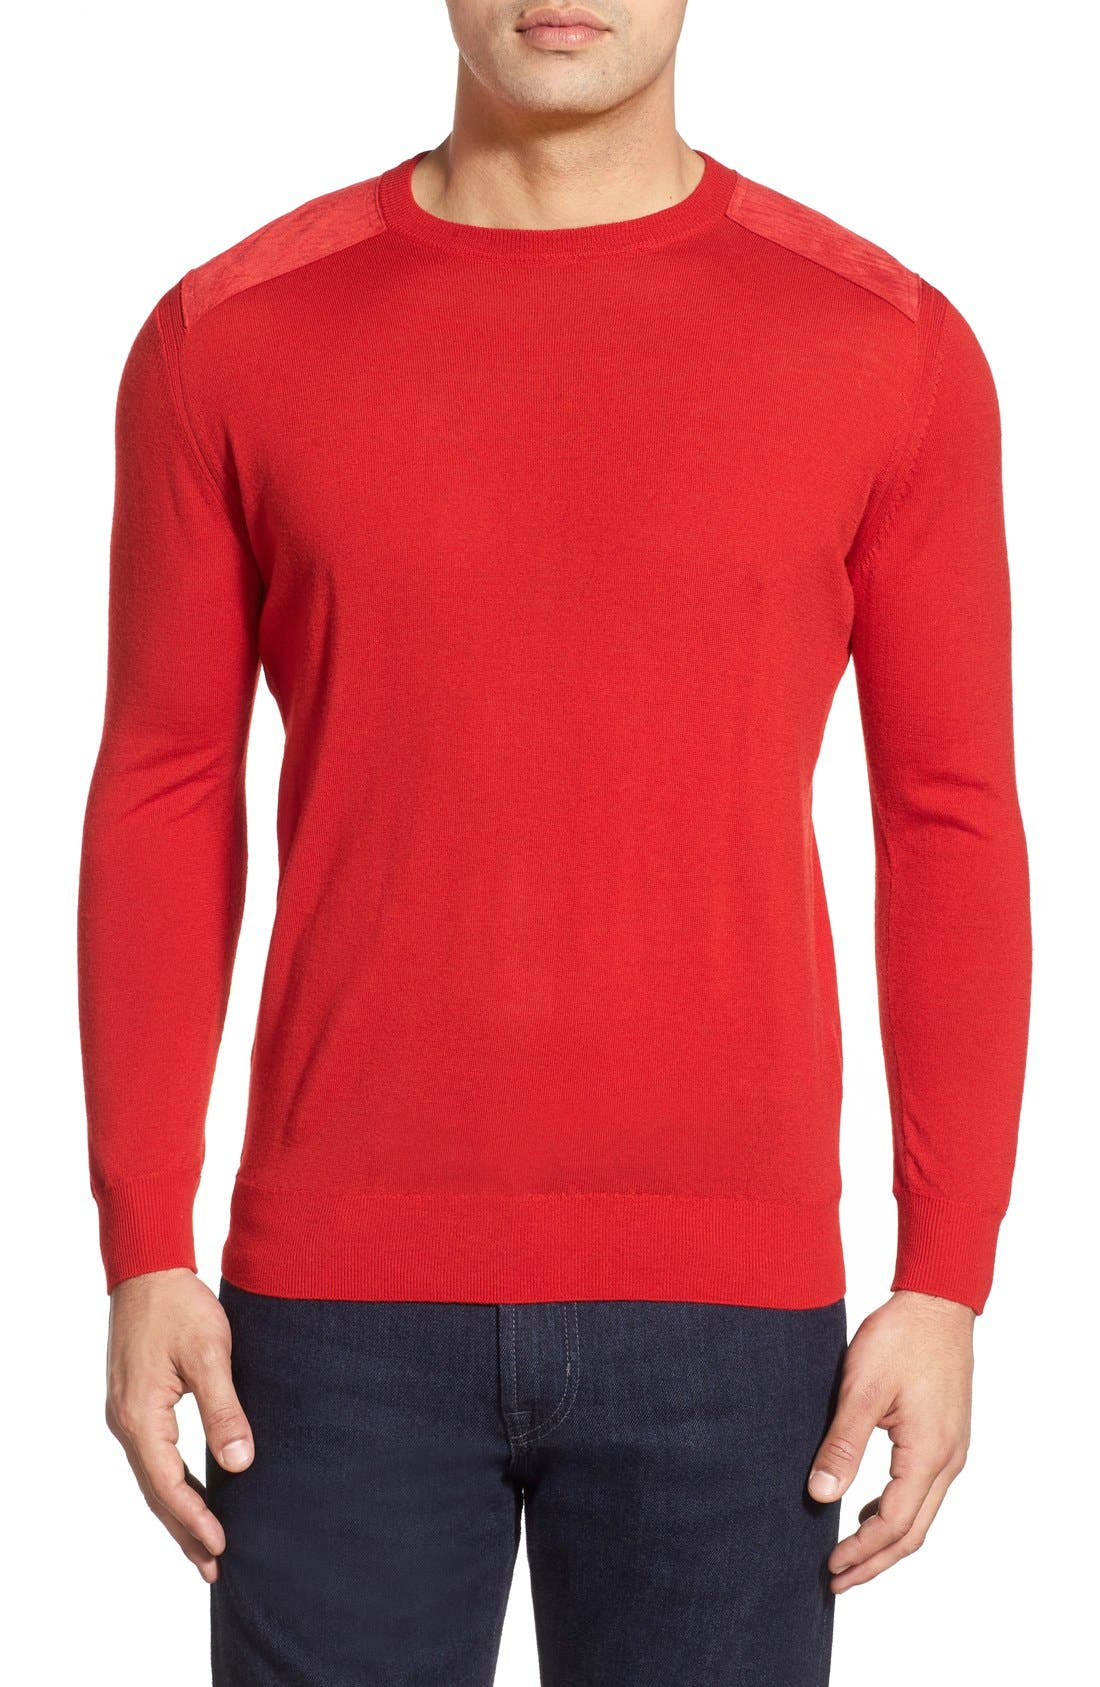 Regular Fit Crewneck Sweater,                         Main,                         color, Cherry